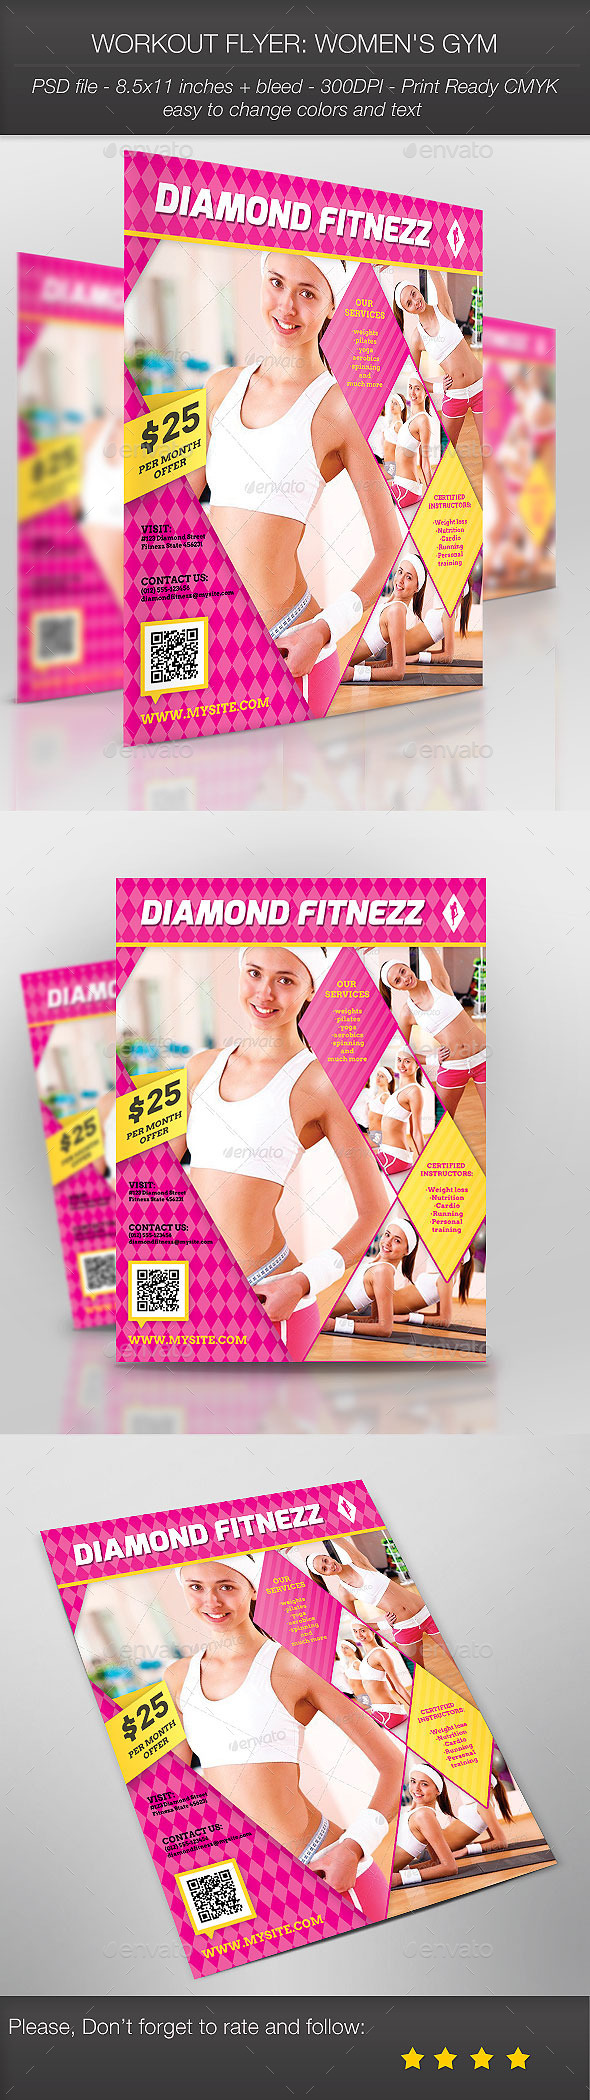 GraphicRiver Workout Flyer Women s Gym 9102478